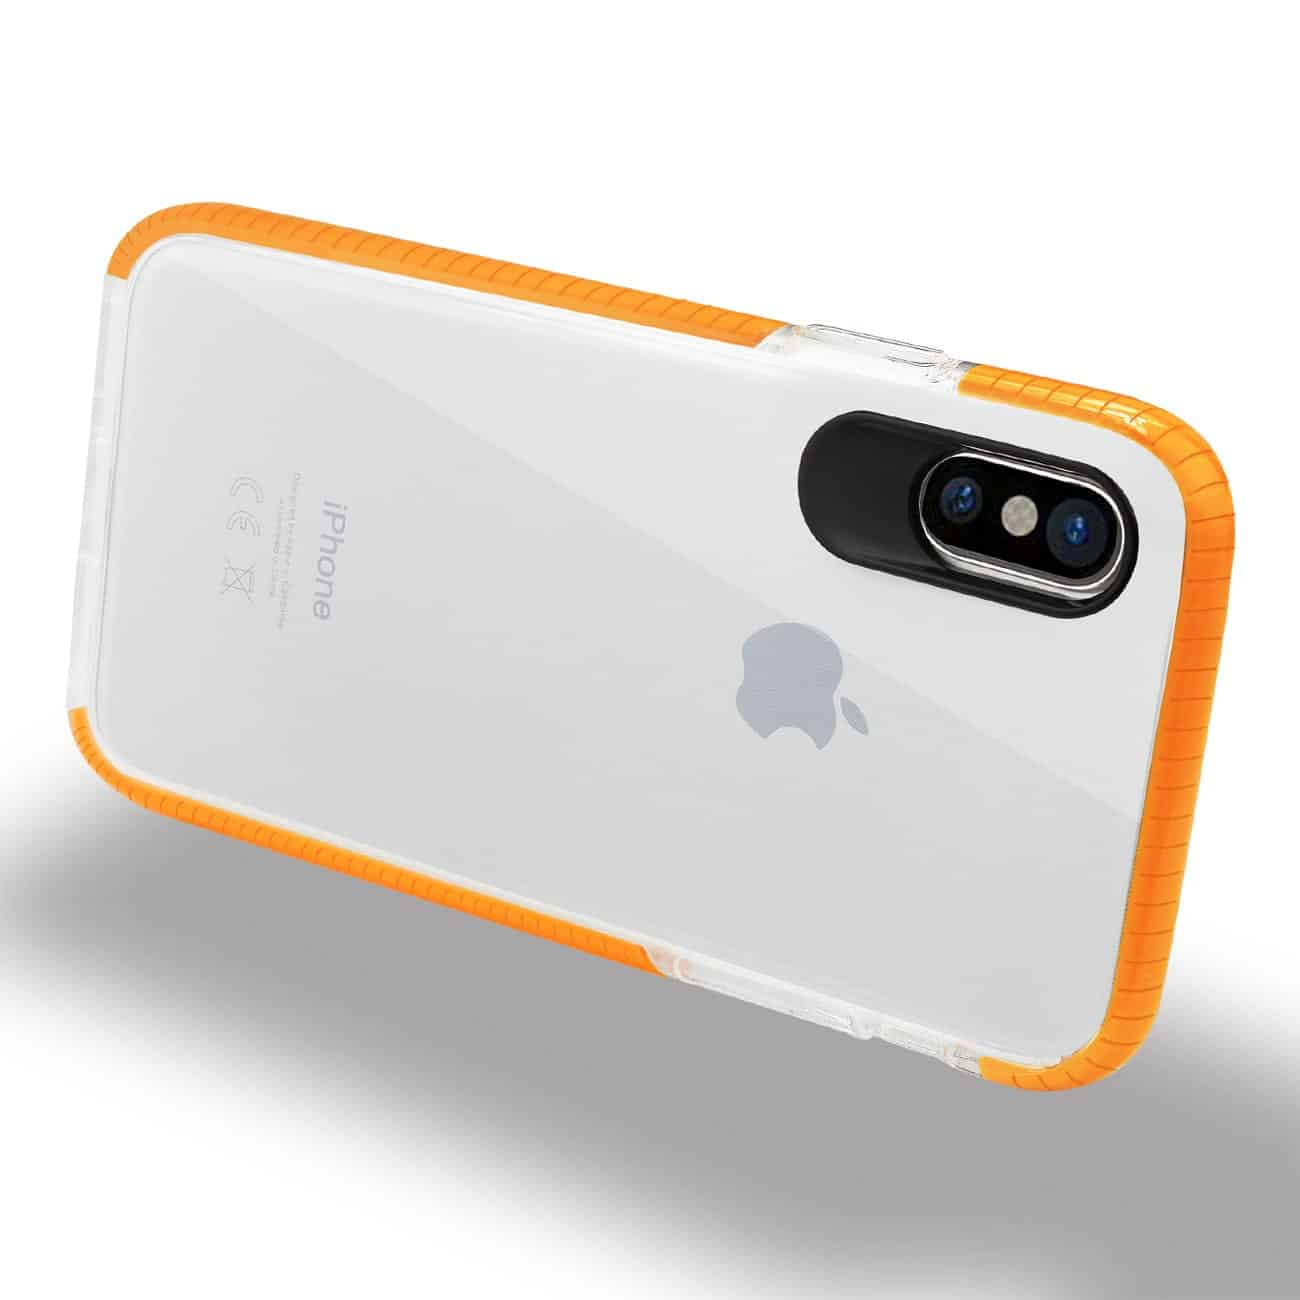 IPHONE X SOFT TRANSPARENT TPU CASE IN CLEAR ORANGE